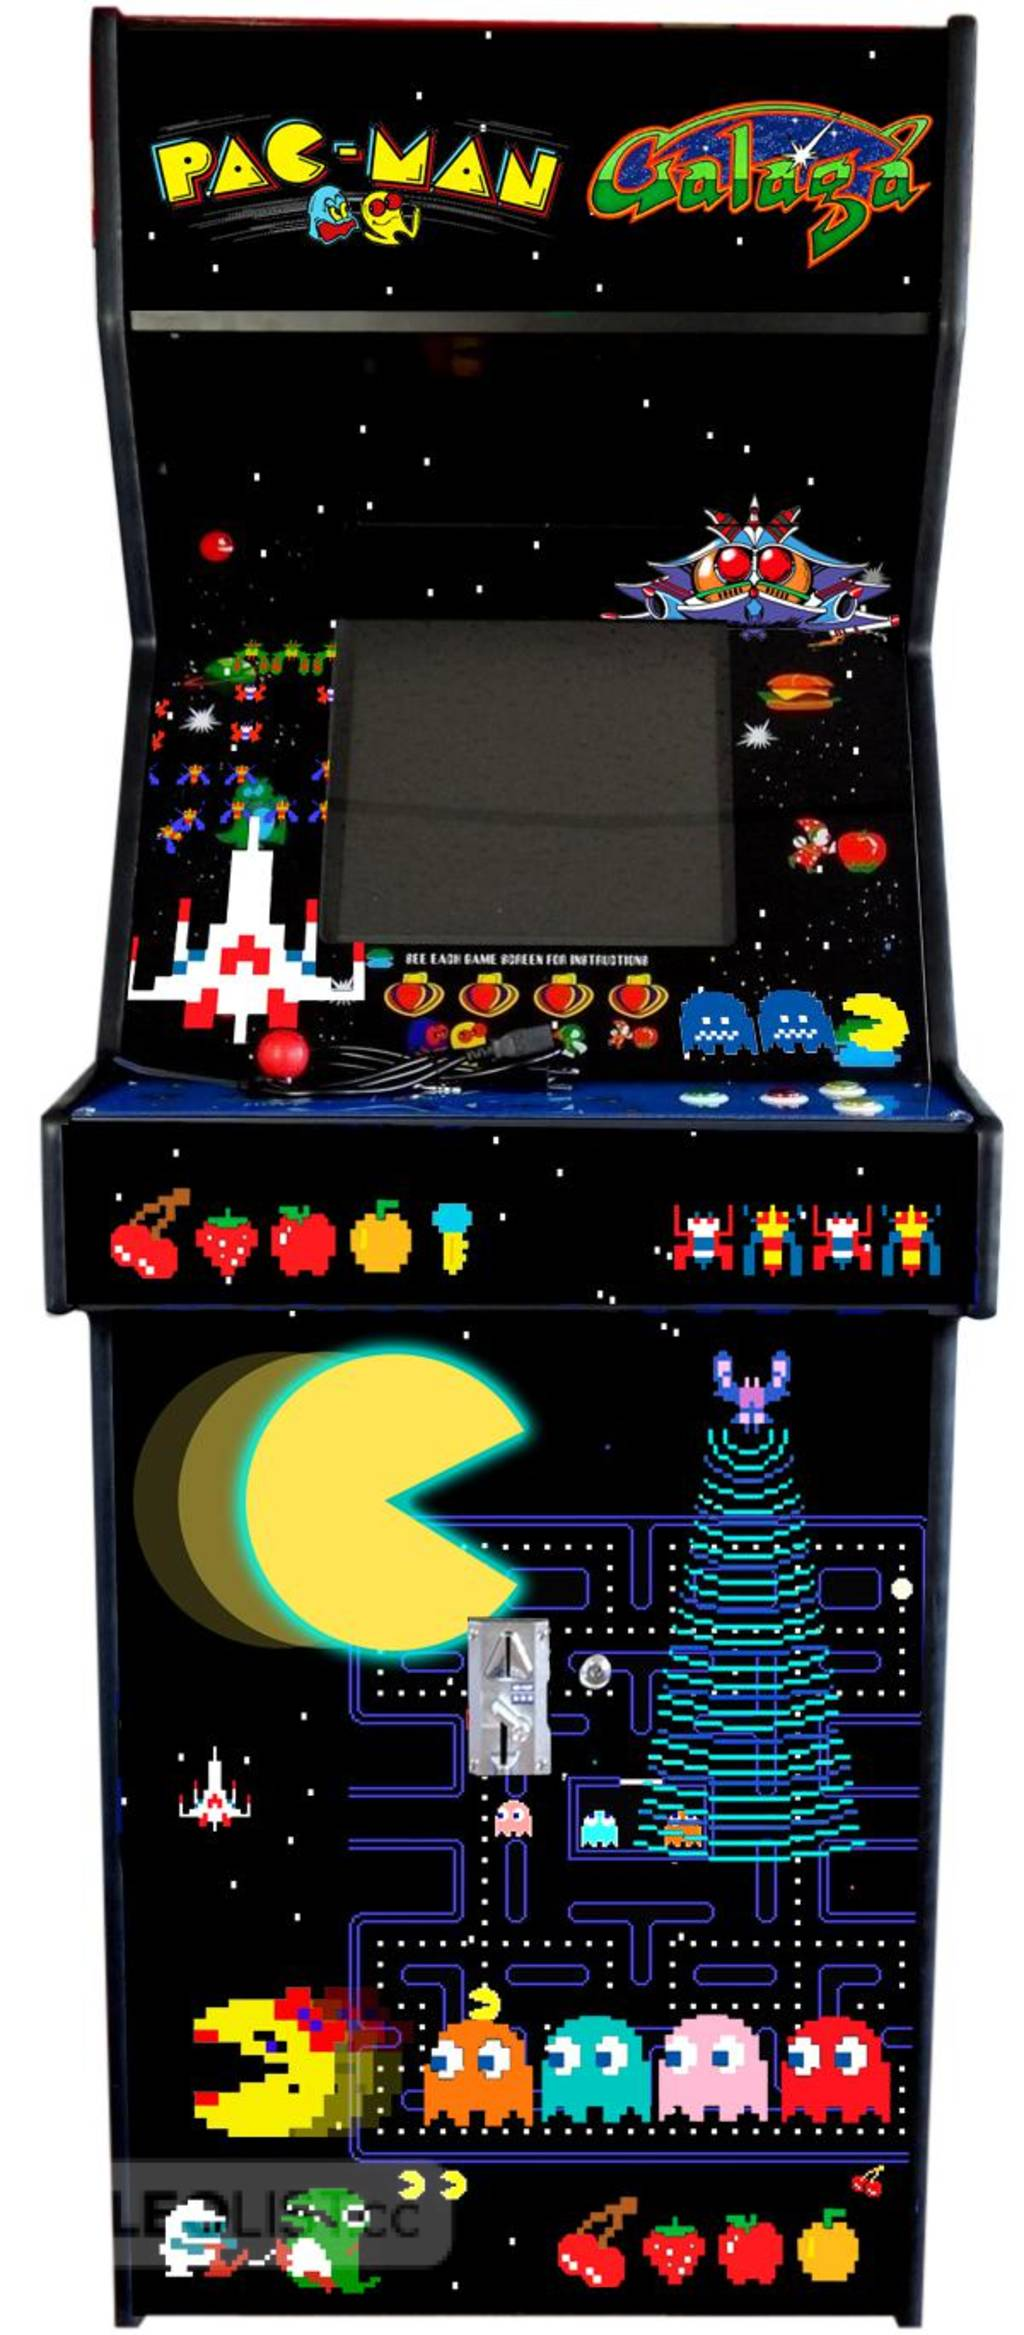 NEW Commercial Grade  tail Table or Classic Upright Ca t Arcade Multicade 60 GAMES IN ONE!